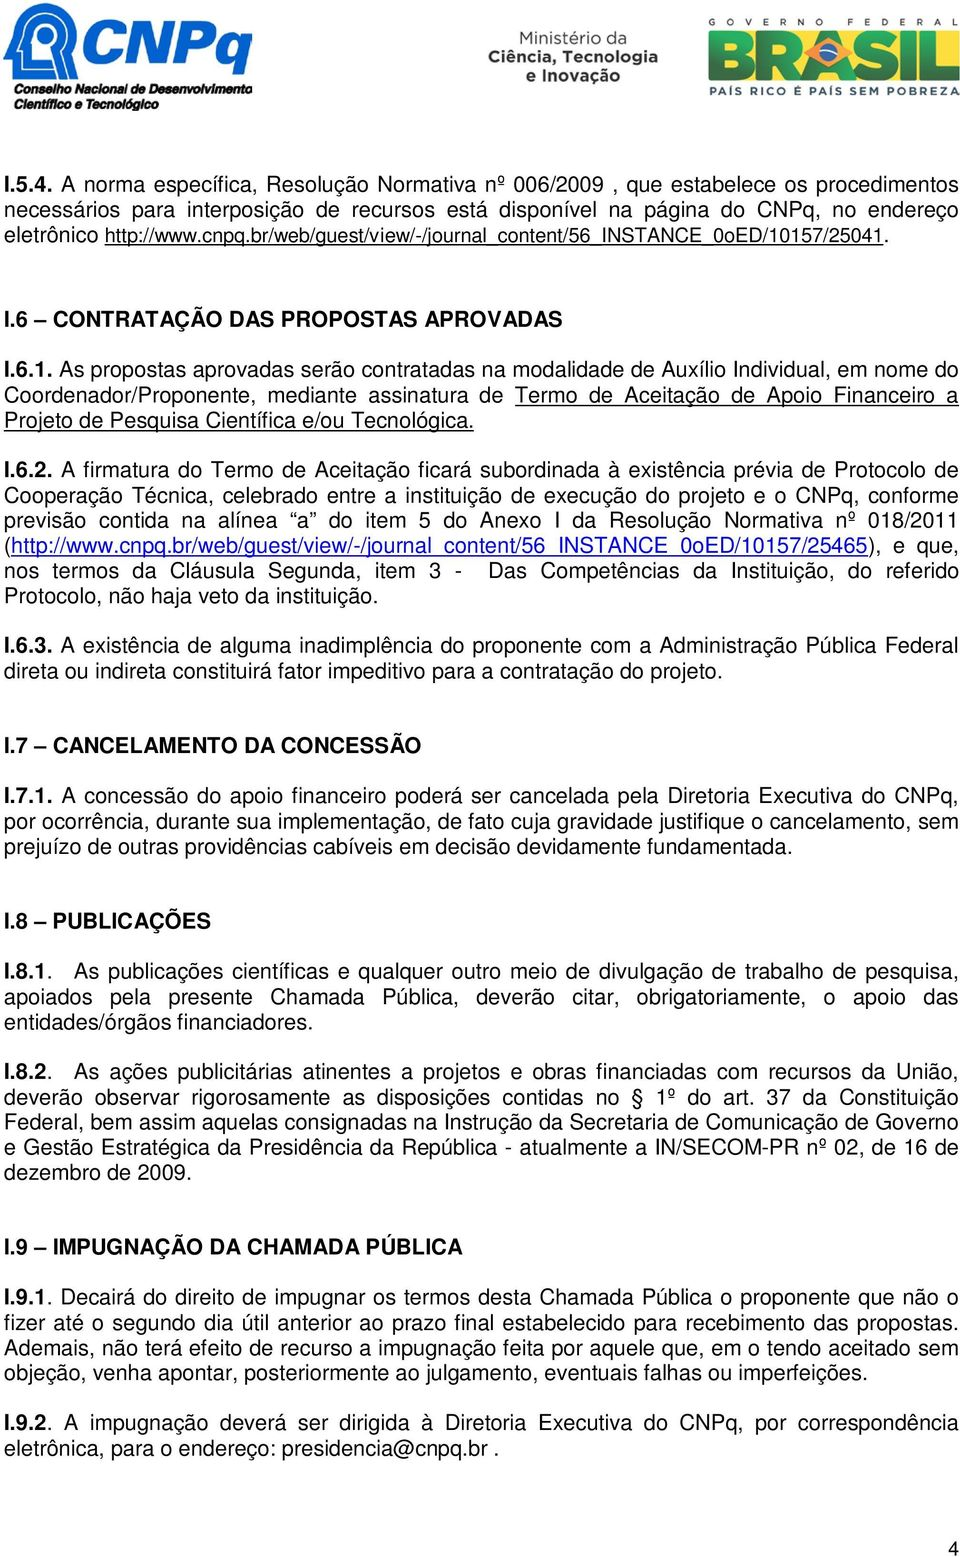 cnpq.br/web/guest/view/-/journal_content/56_instance_0oed/10